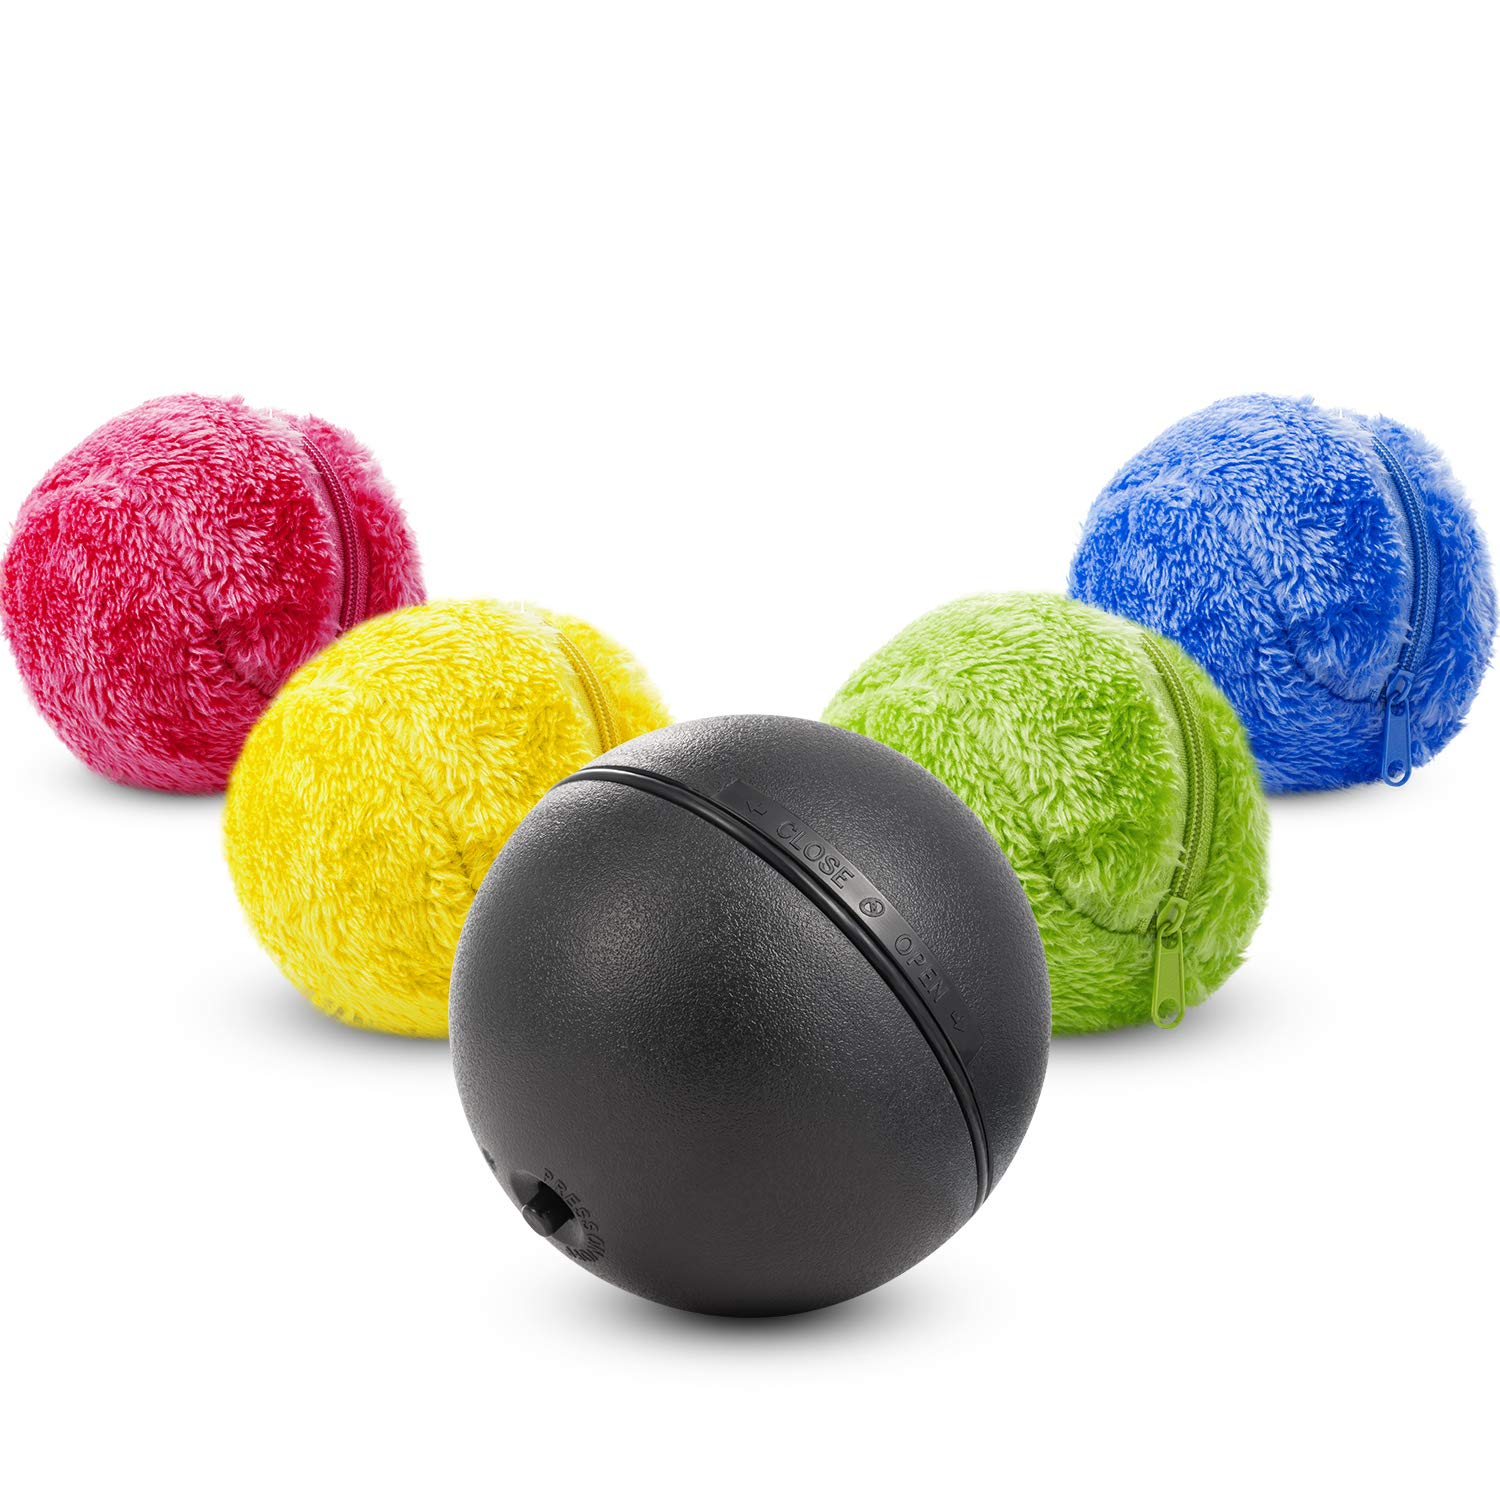 Boao Magic Roller Ball Toy, Dog Cat Automatic Roller Toys Ball with Rolling Ball and Colorful Cover Mini Robot Cleaner for Cleaning Home and Pet Interactive Toys (1 Set)